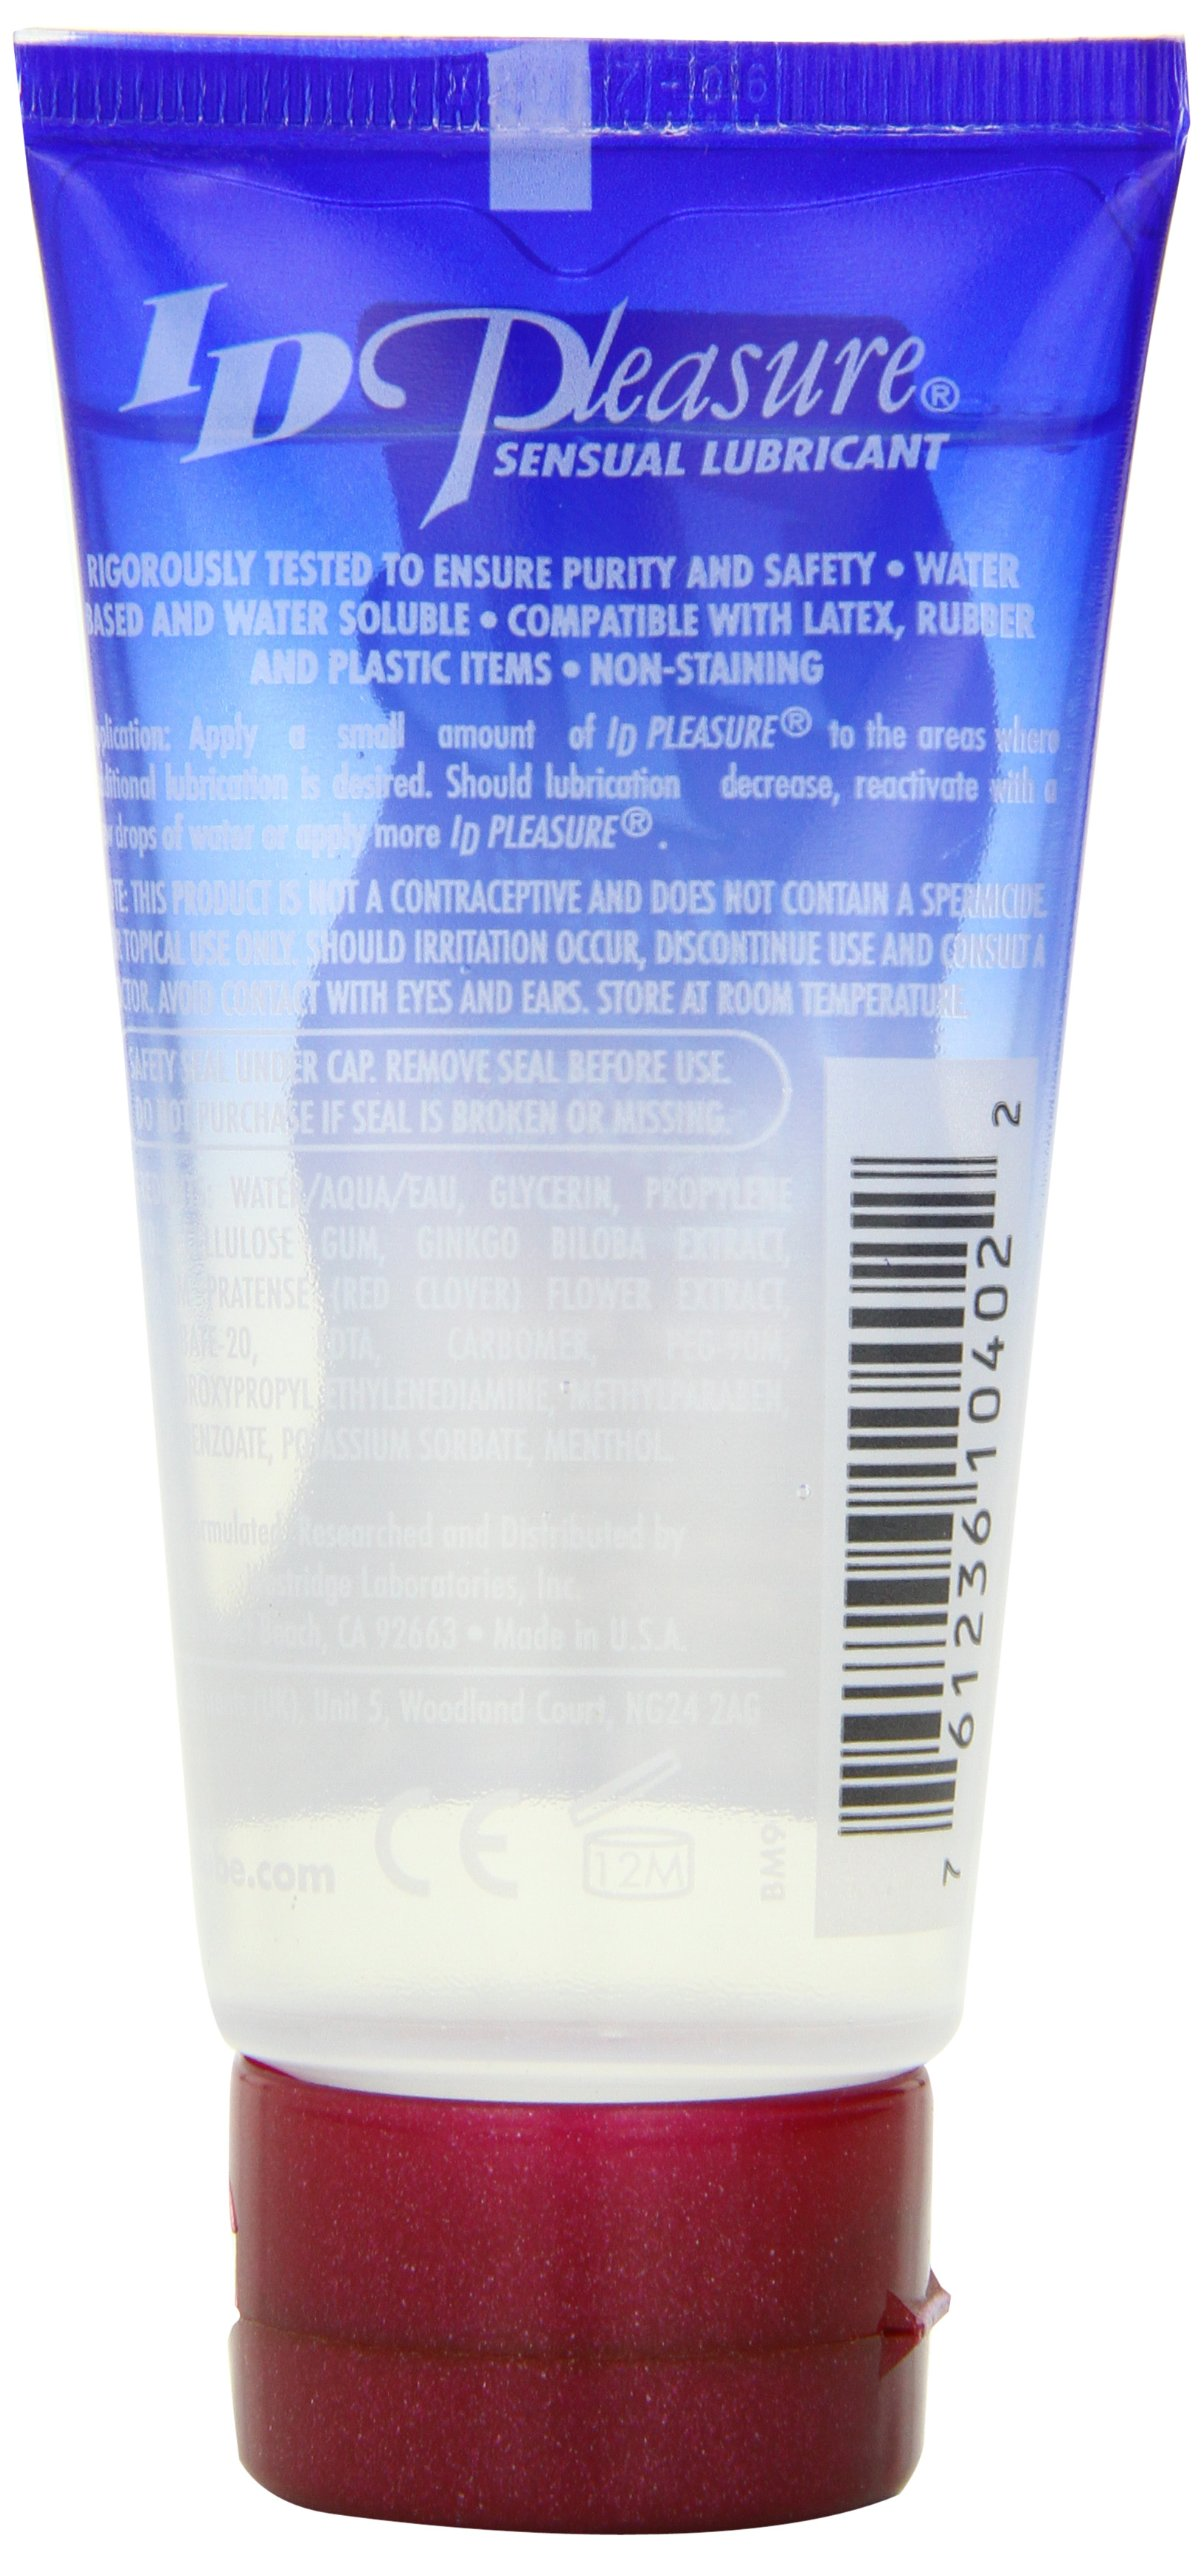 ID Pleasure 2 FL OZ Water Based Personal Lubricant Travel Tube by ID Lubricants (Image #3)